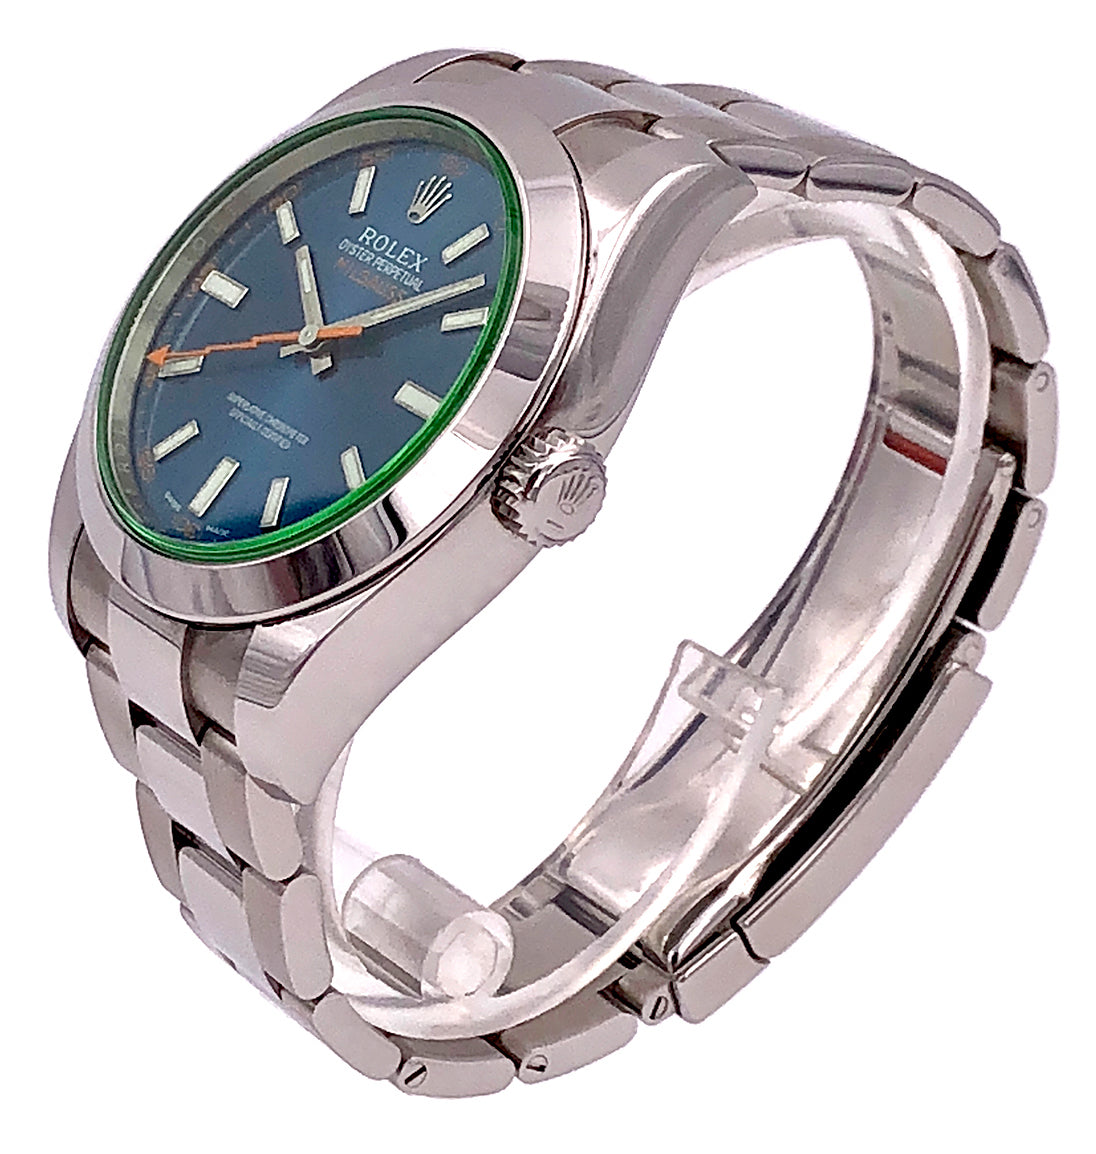 Rolex Milgauss Blue Dial Stainless Steel - 116400GV